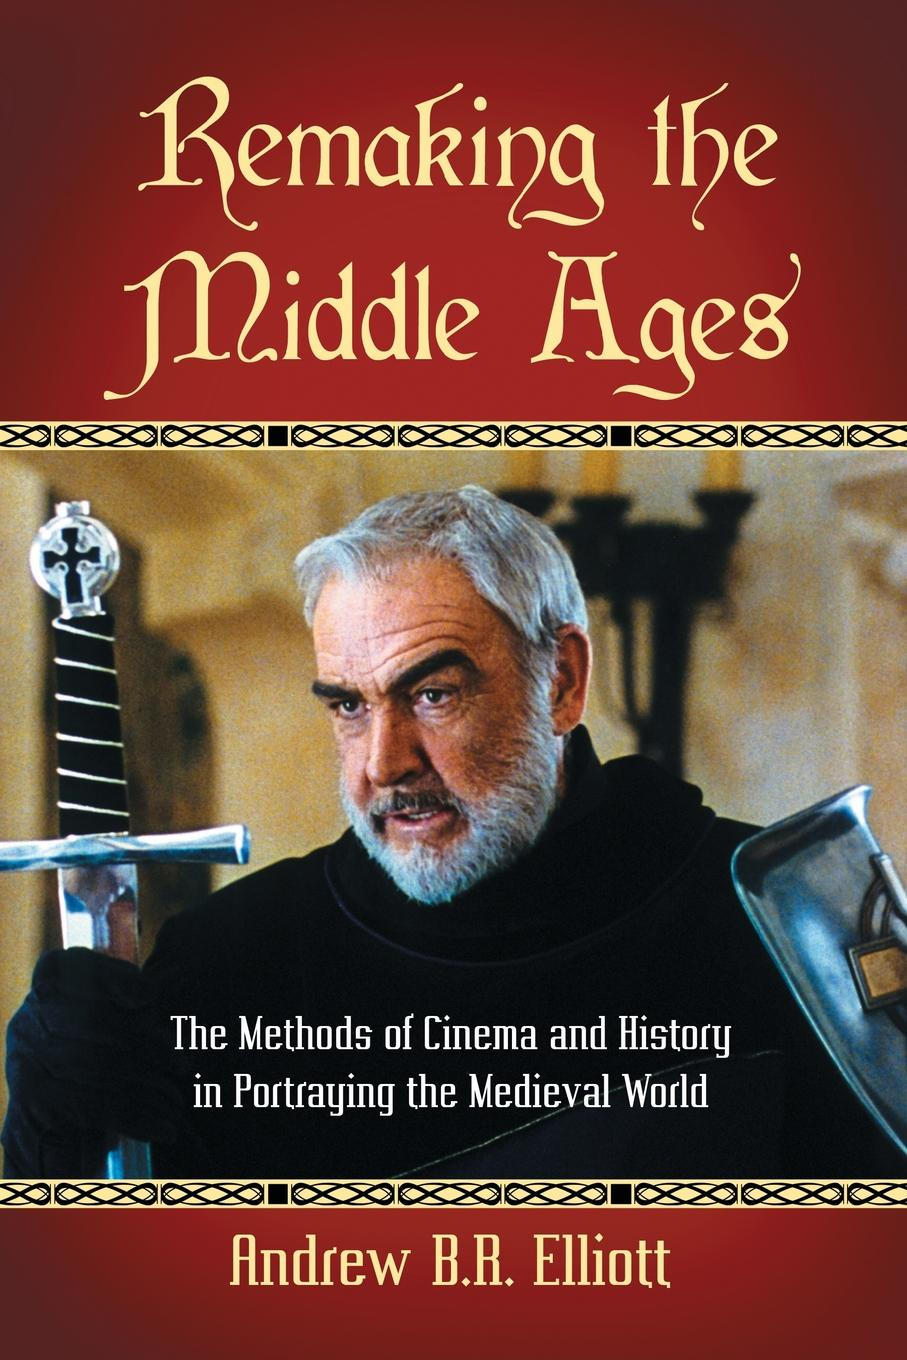 Andrew B R Elliott. Remaking the Middle Ages. The Methods of Cinema and History in Portraying the Medieval World